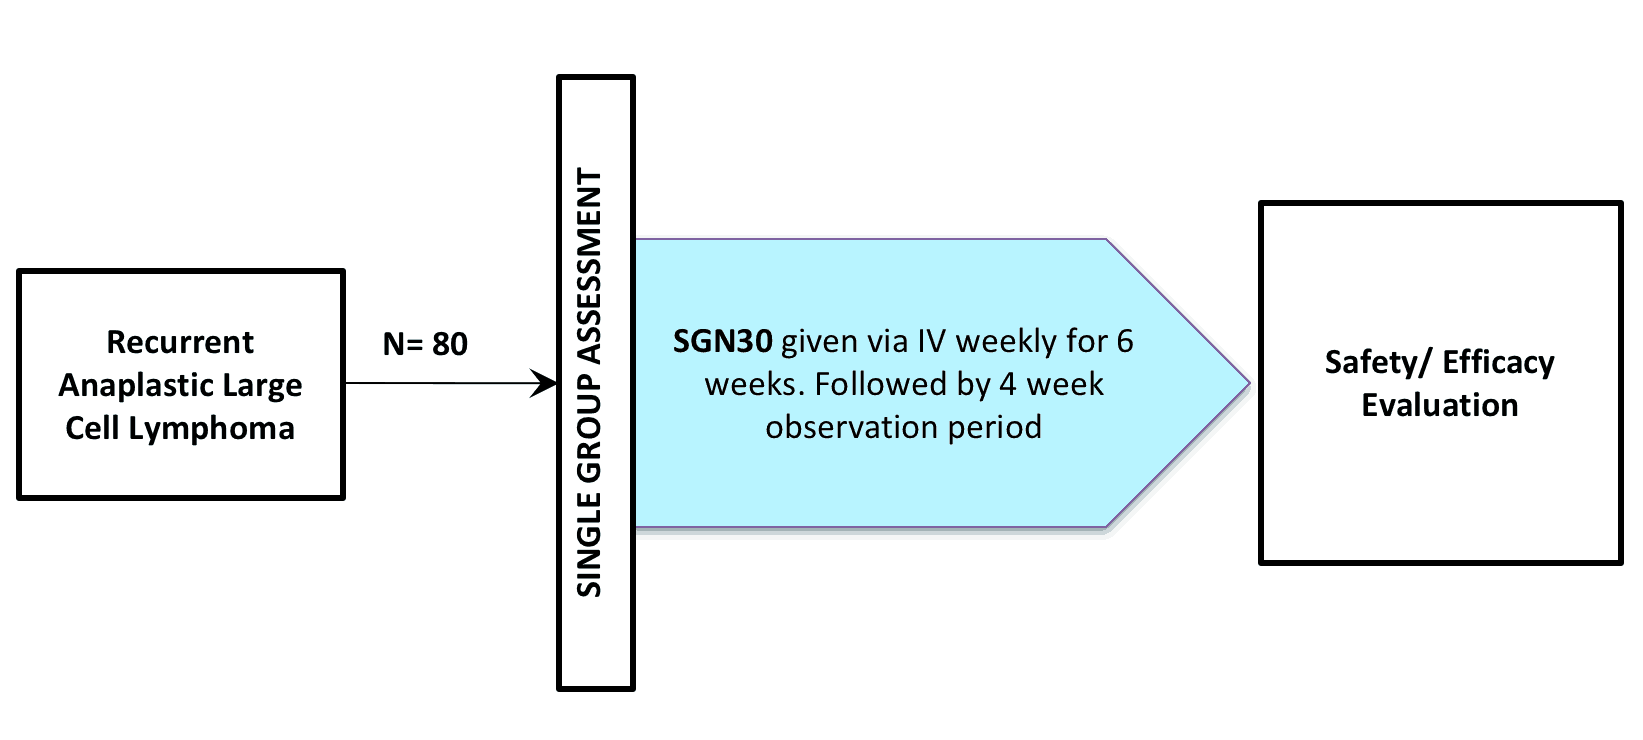 NCT00079755 (CLINICAL TRIAL / BRENTUXIMAB VEDOTIN / SGN-035 / ADCETRIS®)